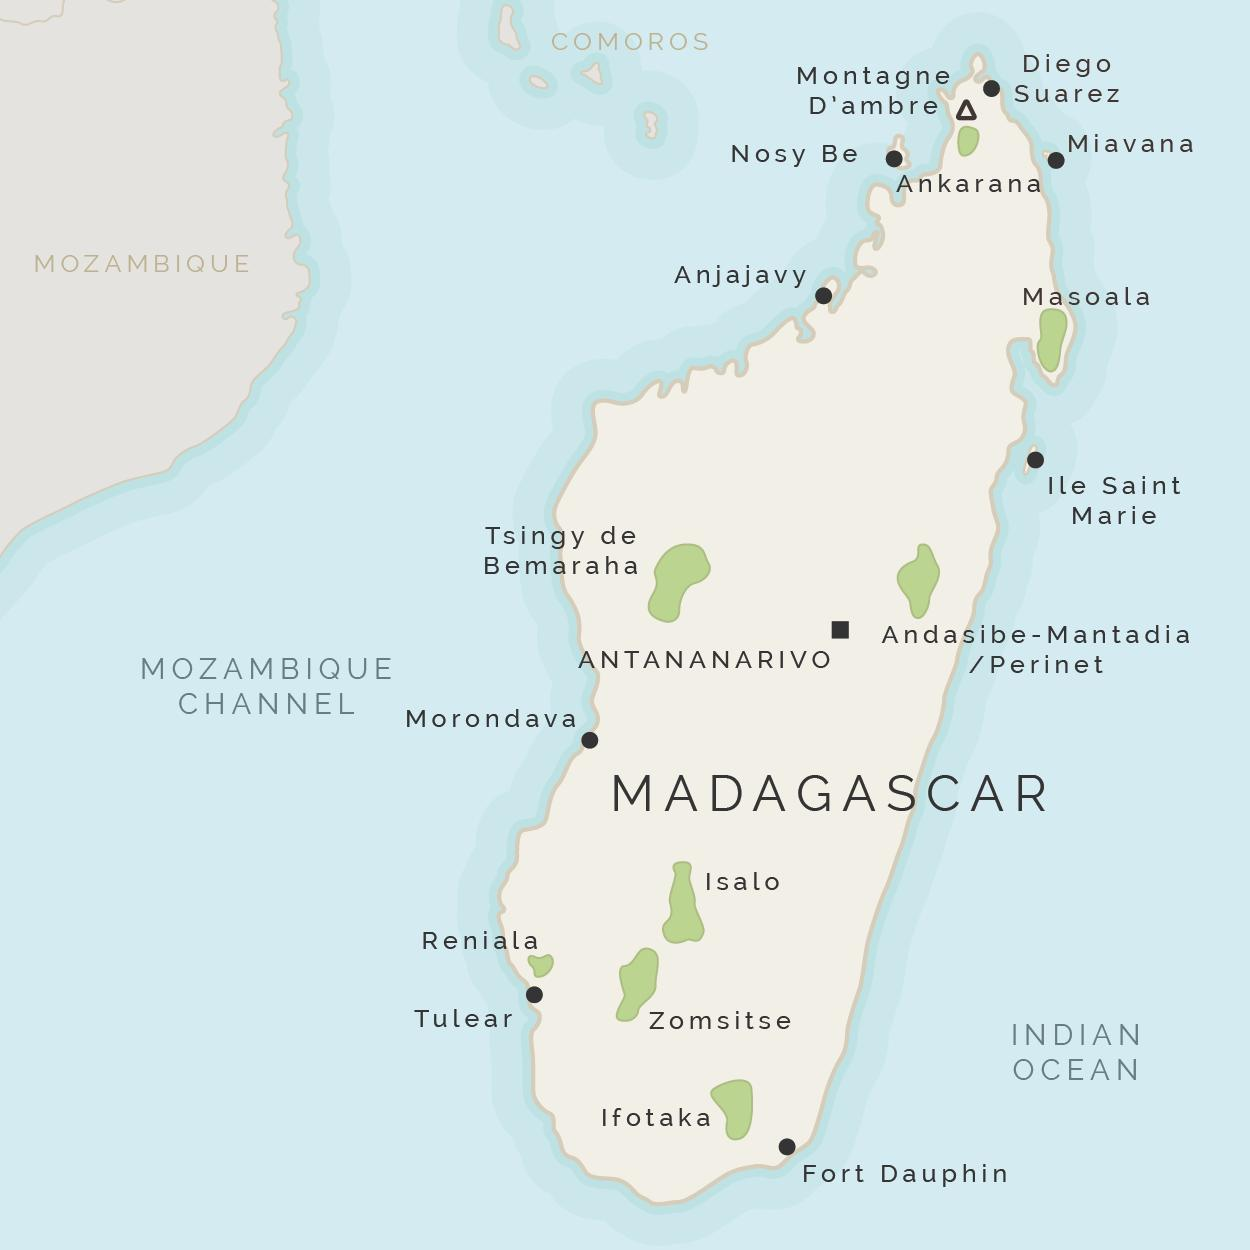 Madagascar Island Map Madagascar island map   Map of Madagascar and surrounding islands